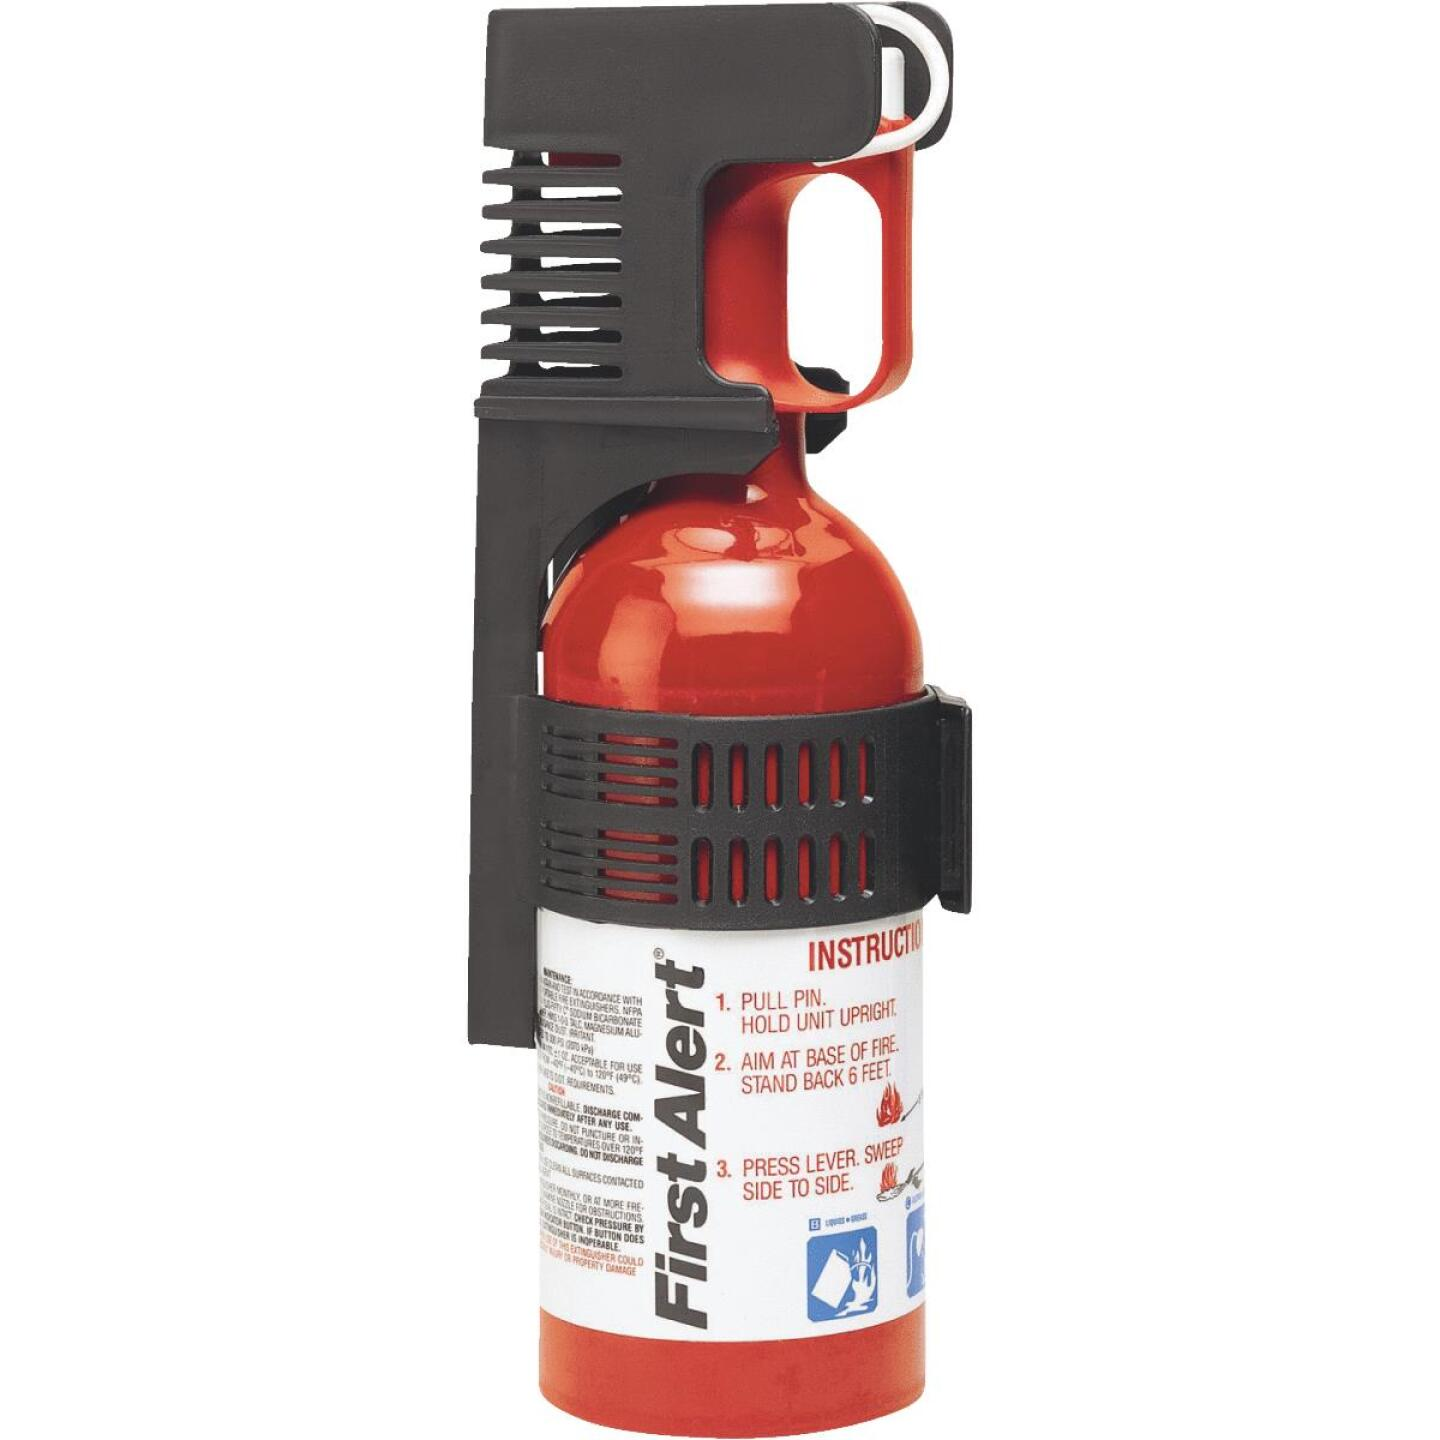 First Alert 5-B:C Auto Fire Extinguisher Image 1